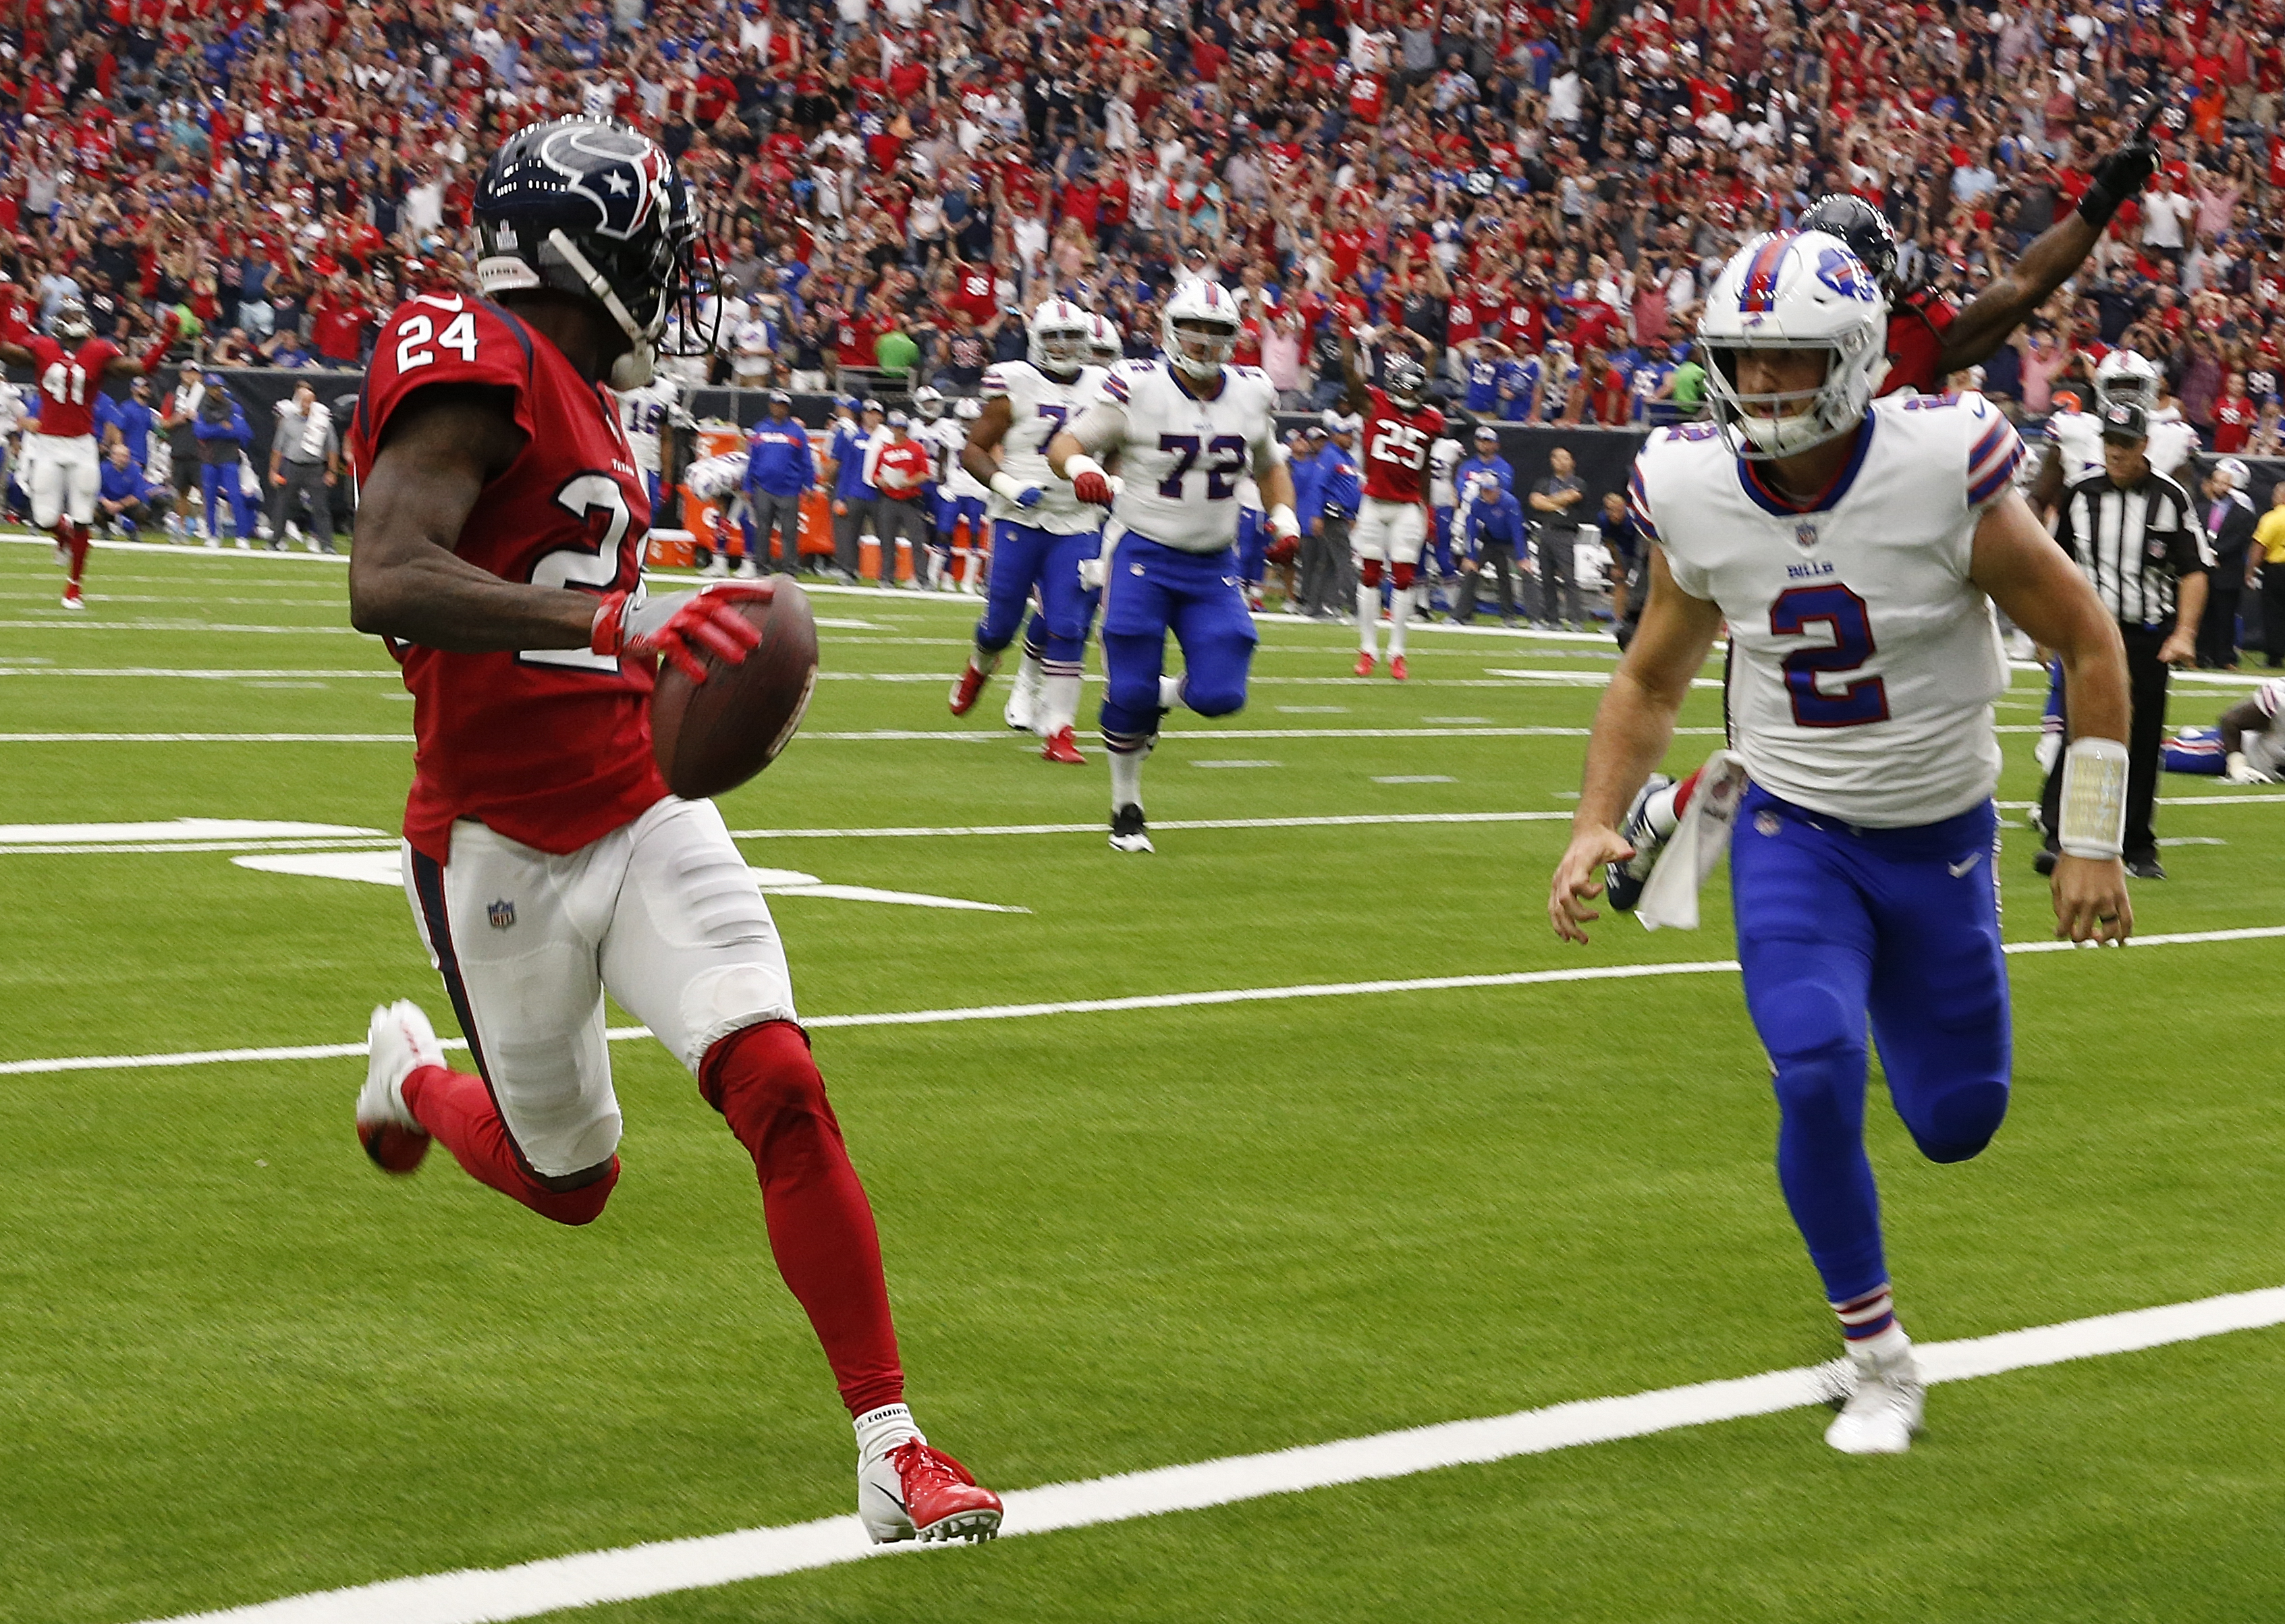 Johnathan Joseph #24 of the Houston Texans scores on an interception as Nathan Peterman #2 of the Buffalo Bills is late on the coverage at NRG Stadium on October 14, 2018 in Houston, Texas.